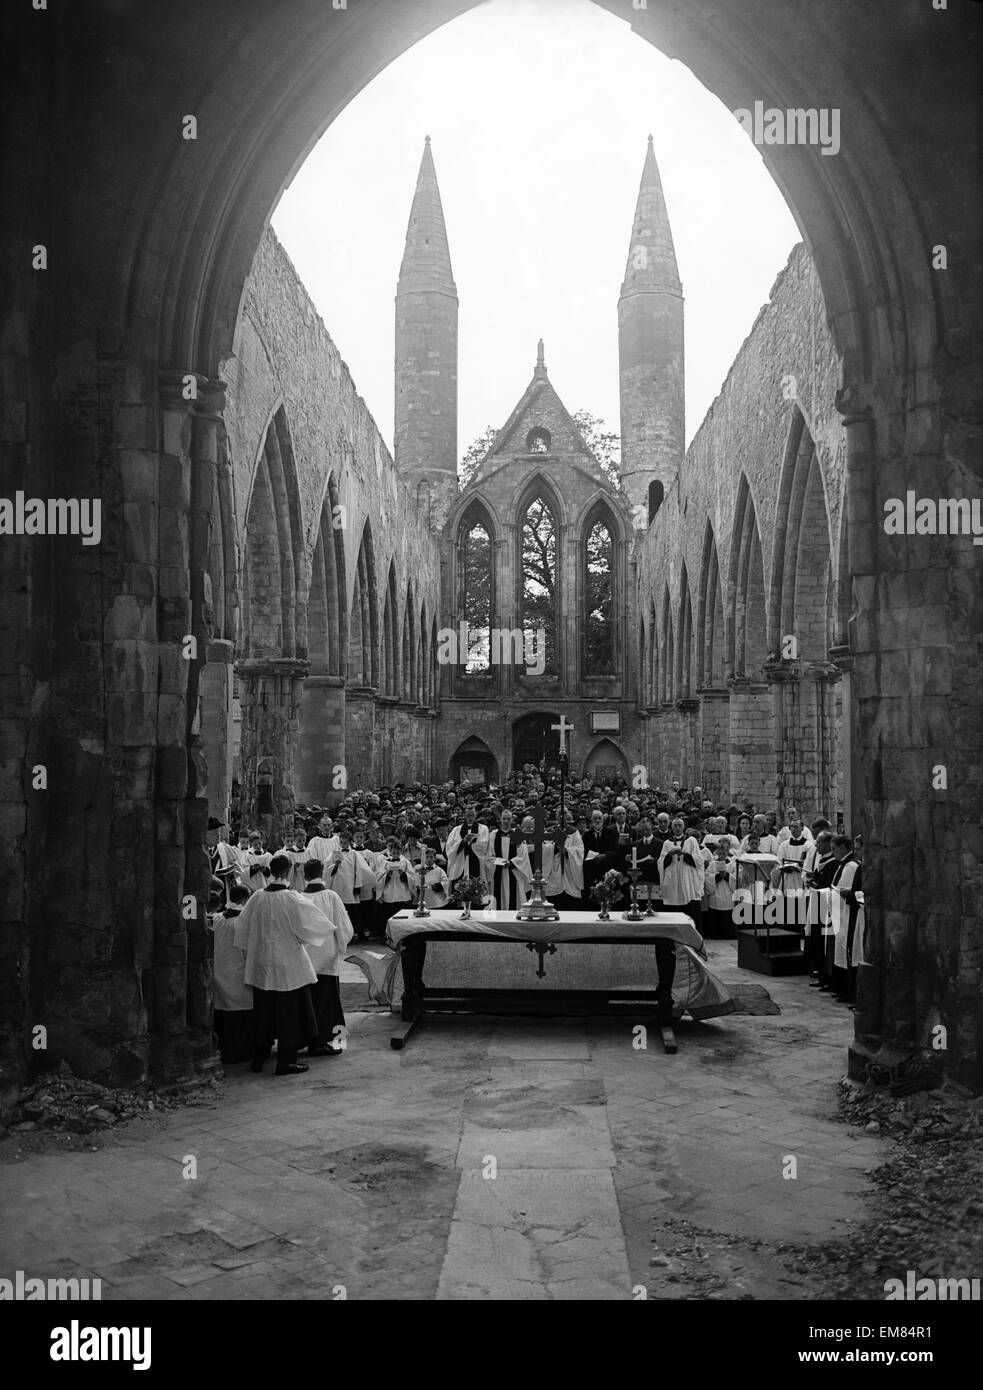 WW2 Norwich Air Raid Bomb Damage June 1943 Church sevice in bombed out remains of Norwich Cathedral Norwich was - Stock Image